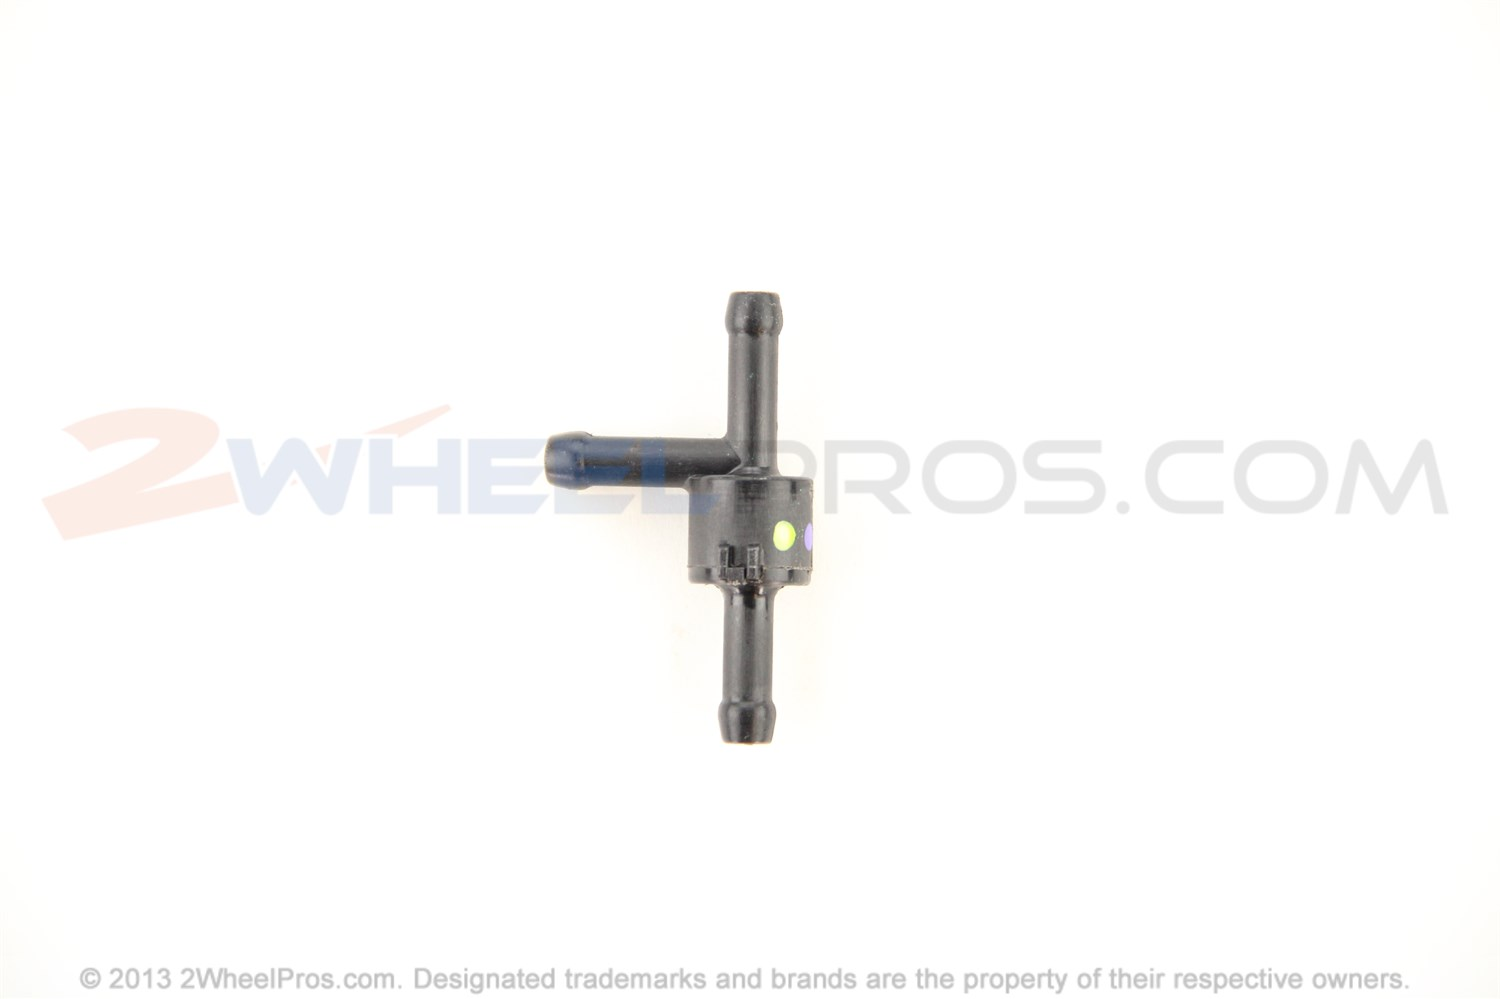 Vm0 770 Honda Valve Fuel 3way 17 07